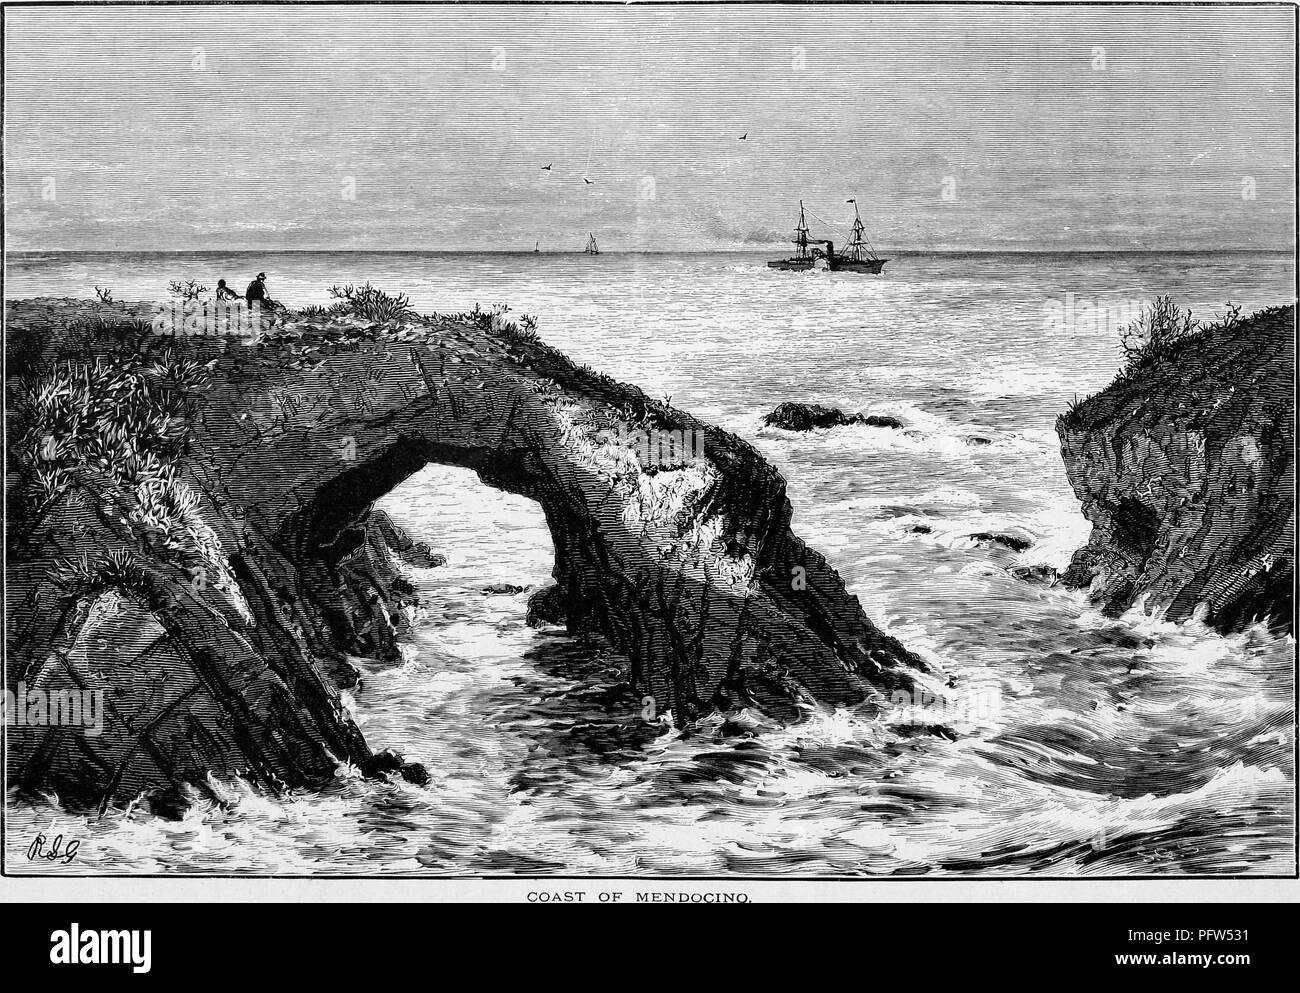 Black and white vintage print depicting a pair of people seated on a naturally arched rock formation, looking toward the ocean, with sailing ships on the horizon, located on the coast of Mendocino, California, published in William Cullen Bryant's edited volume 'Picturesque America; or, The Land We Live In', 1872. Courtesy Internet Archive. () - Stock Image